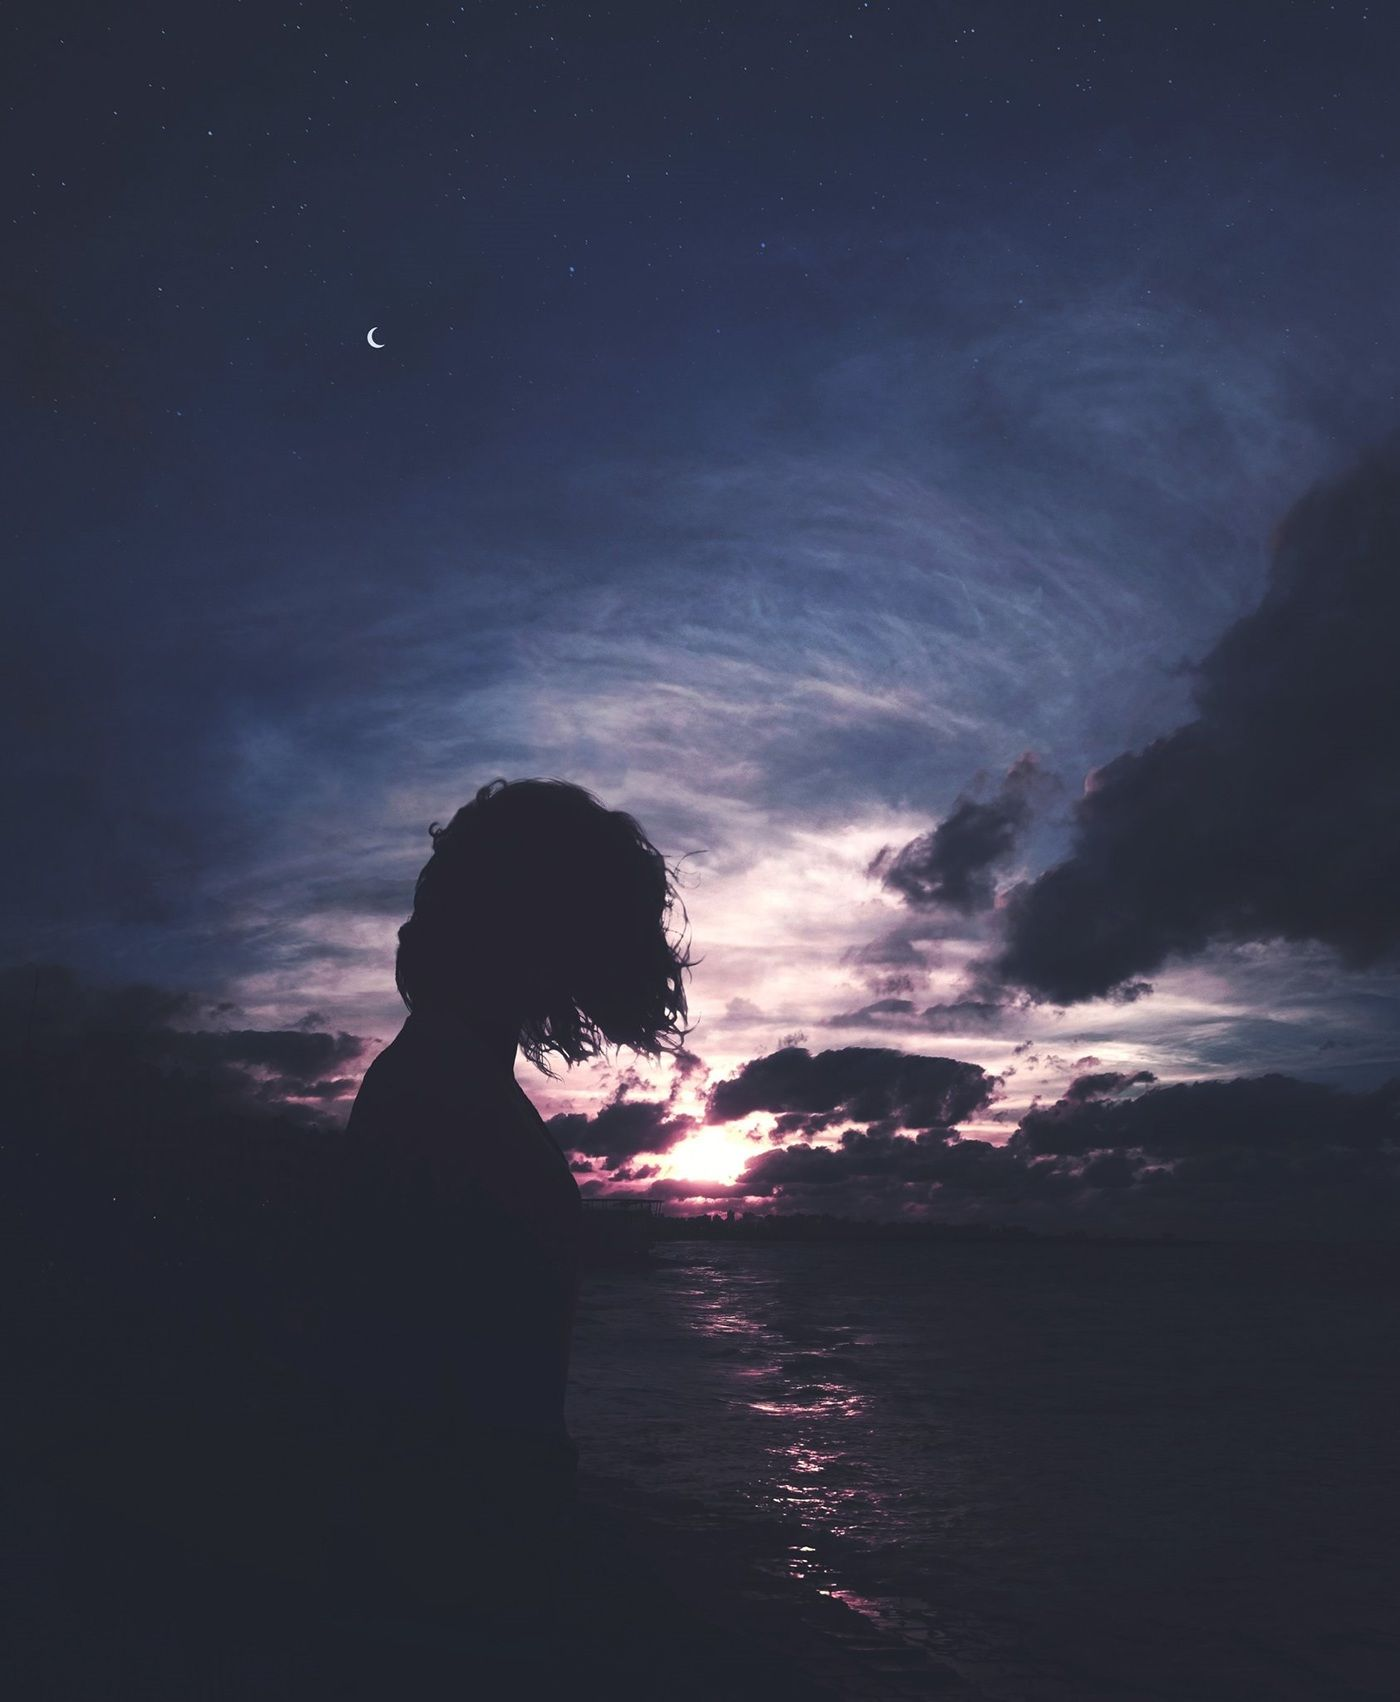 Silhouettes Iv On Behance Anime Scenery Scenery Wallpaper Silhouette Photography